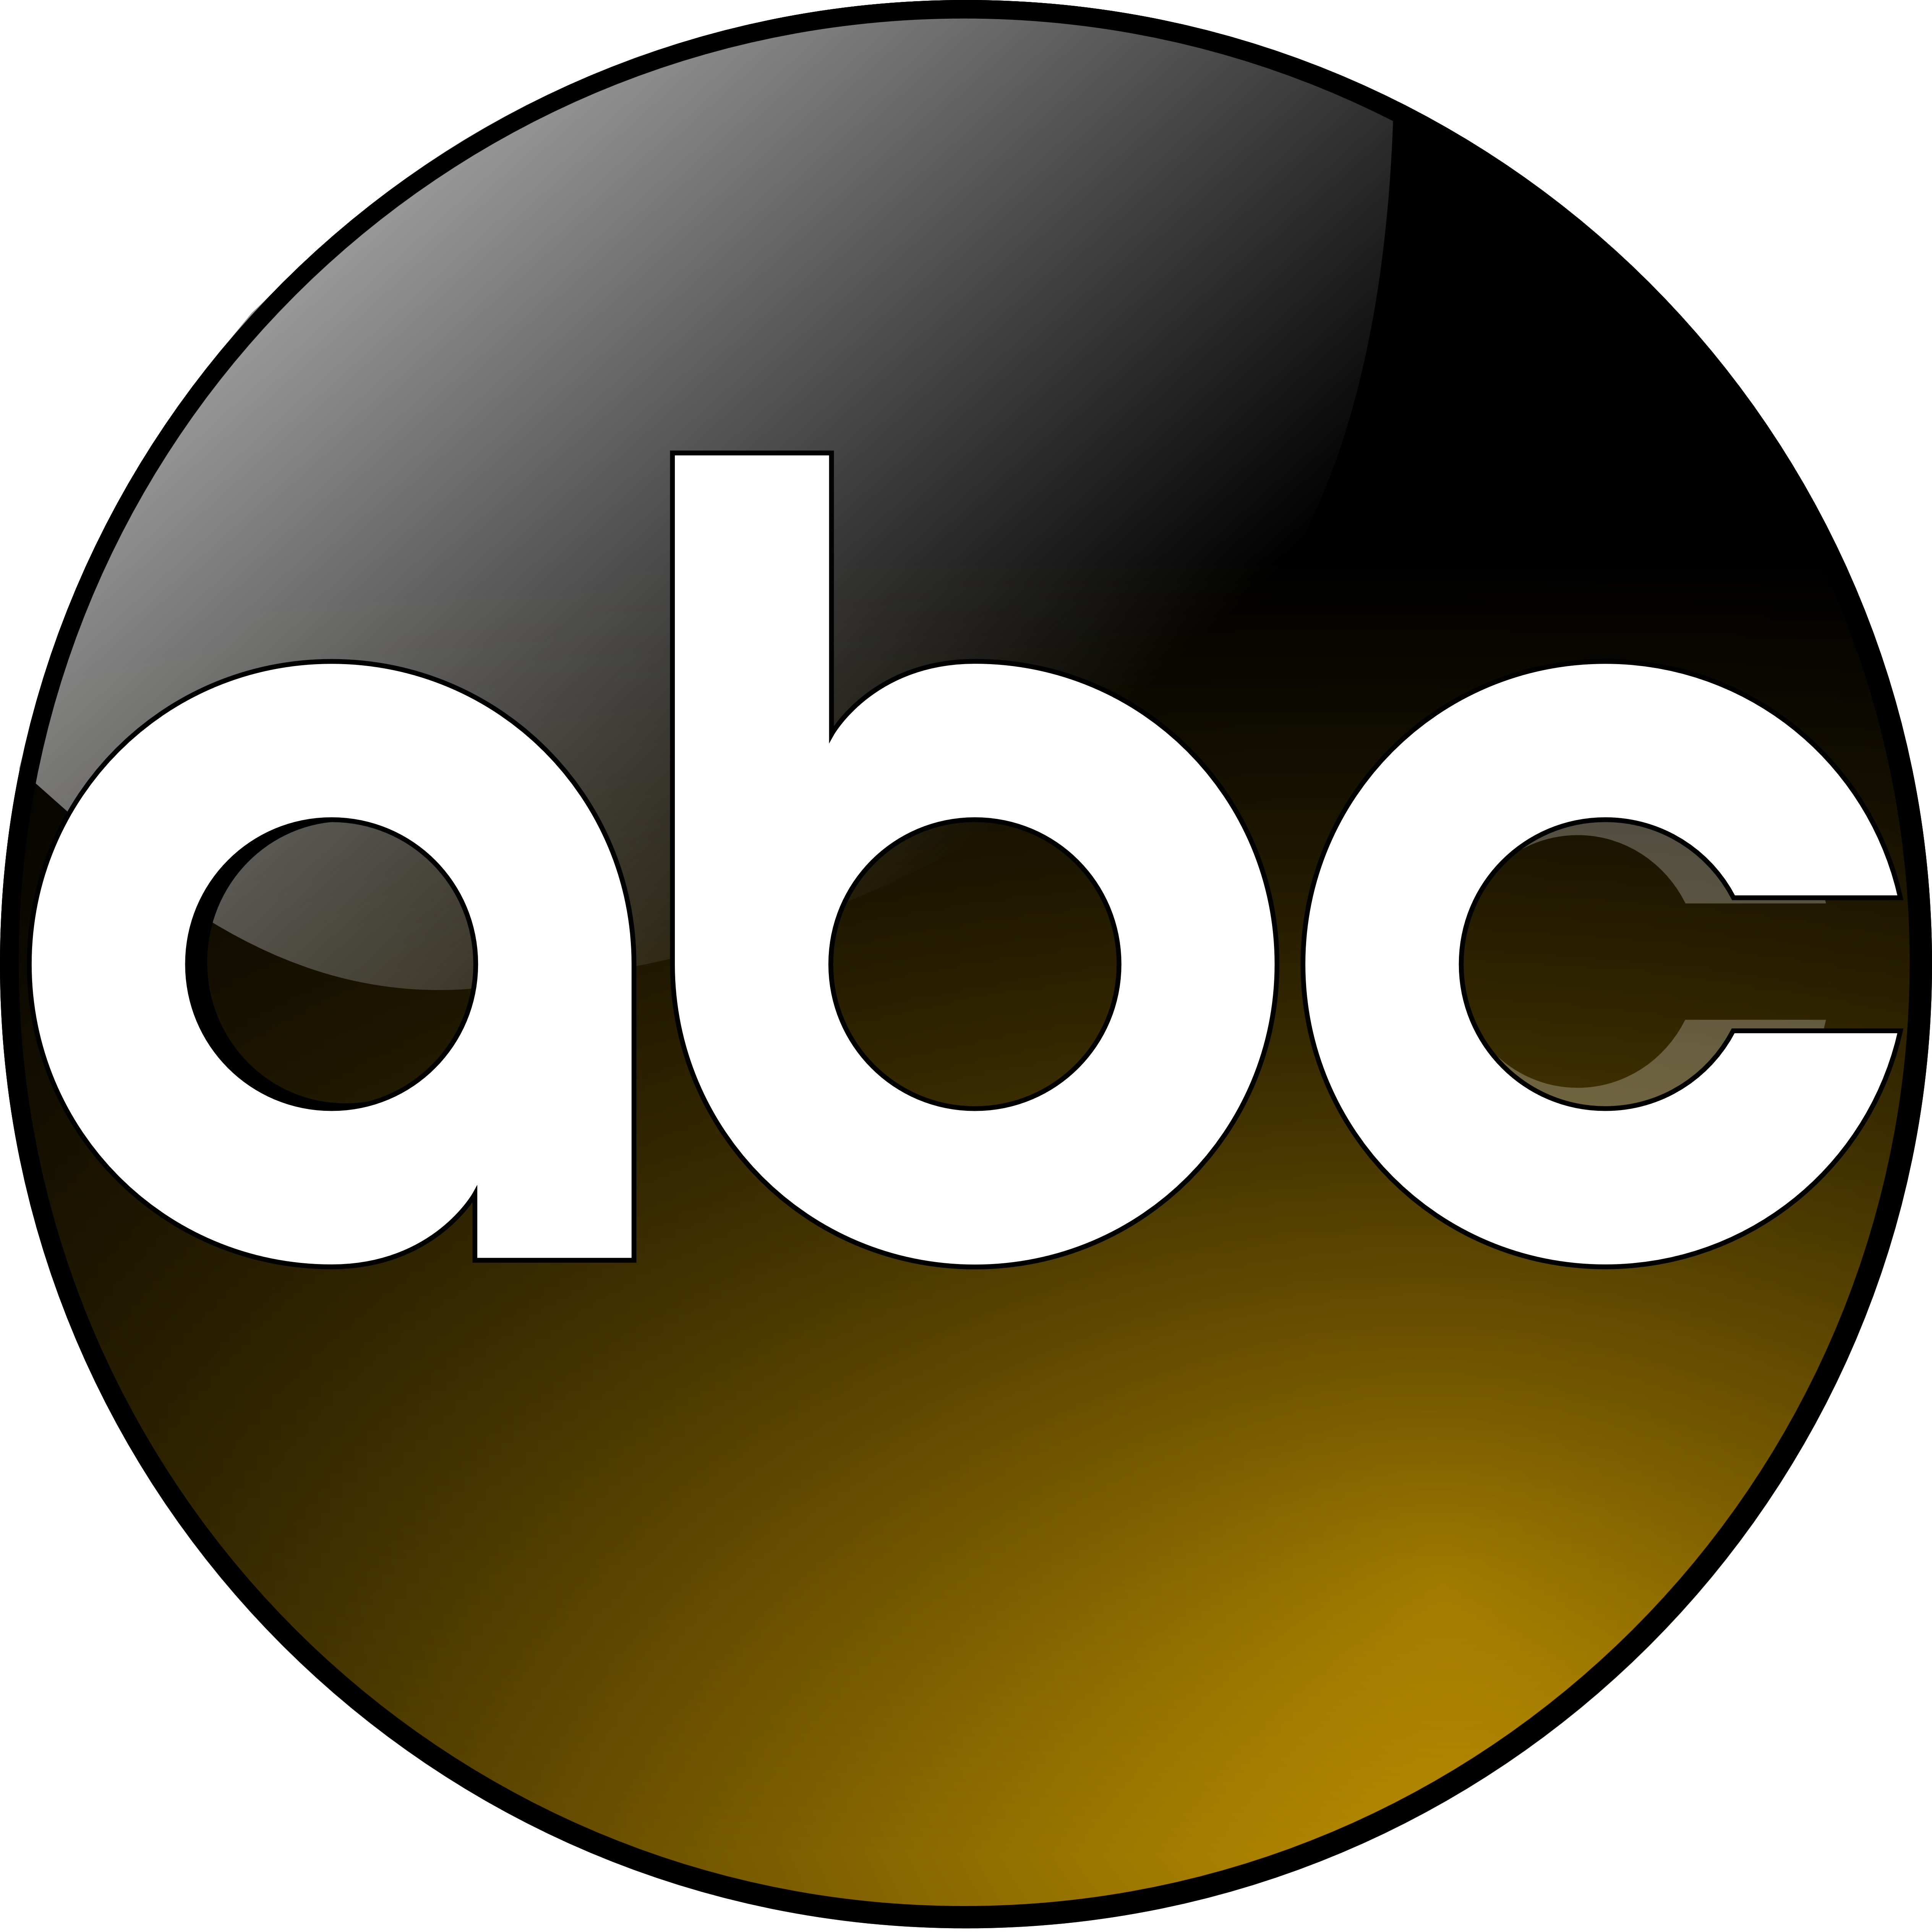 abc � logos download